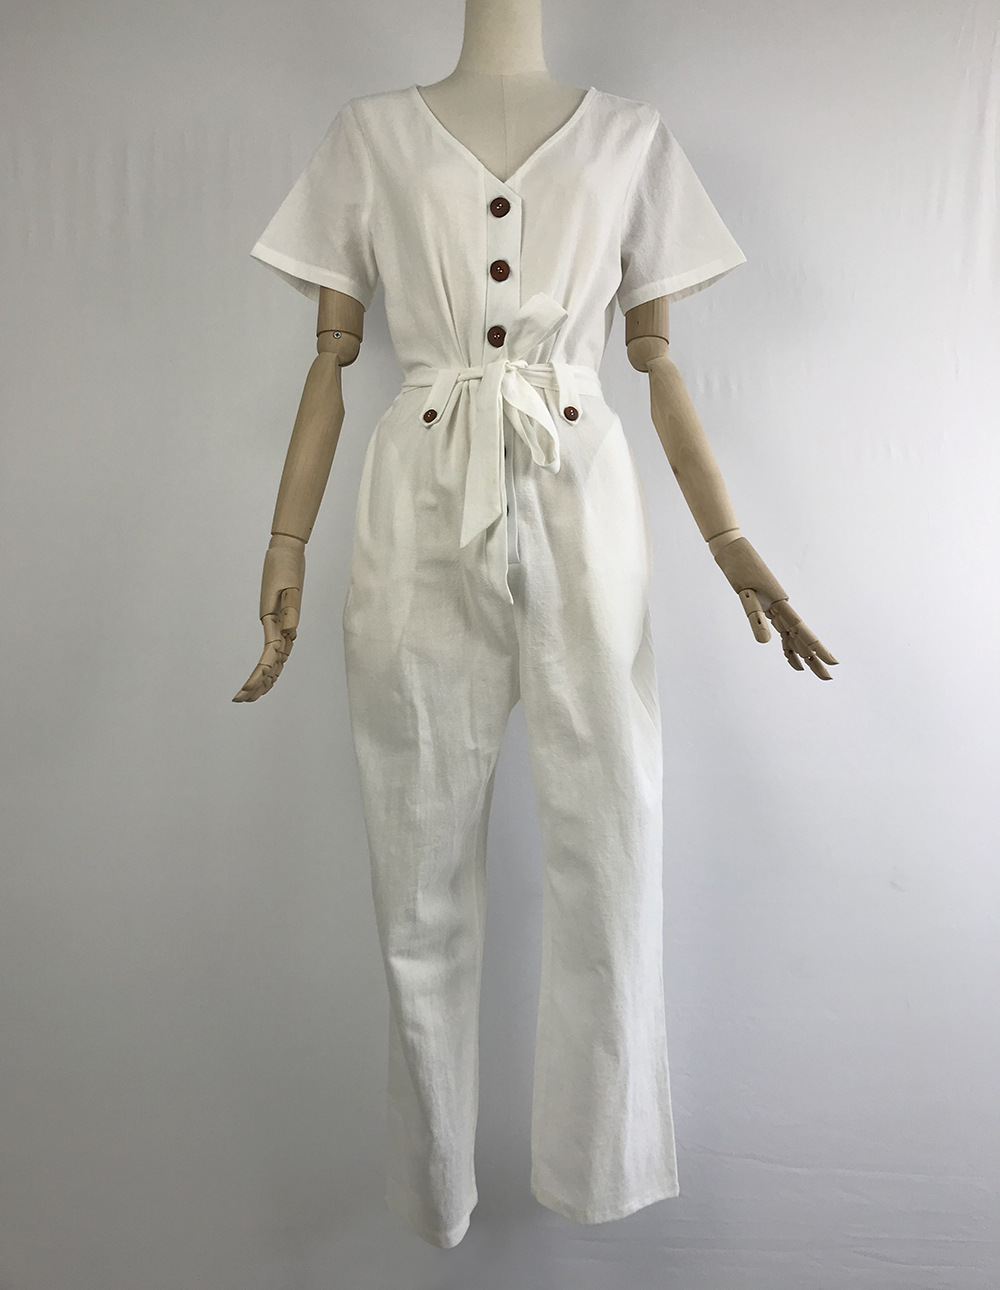 Vintage Women Bodysuit Sash Belt Button Single Breasted V Neck Rompers